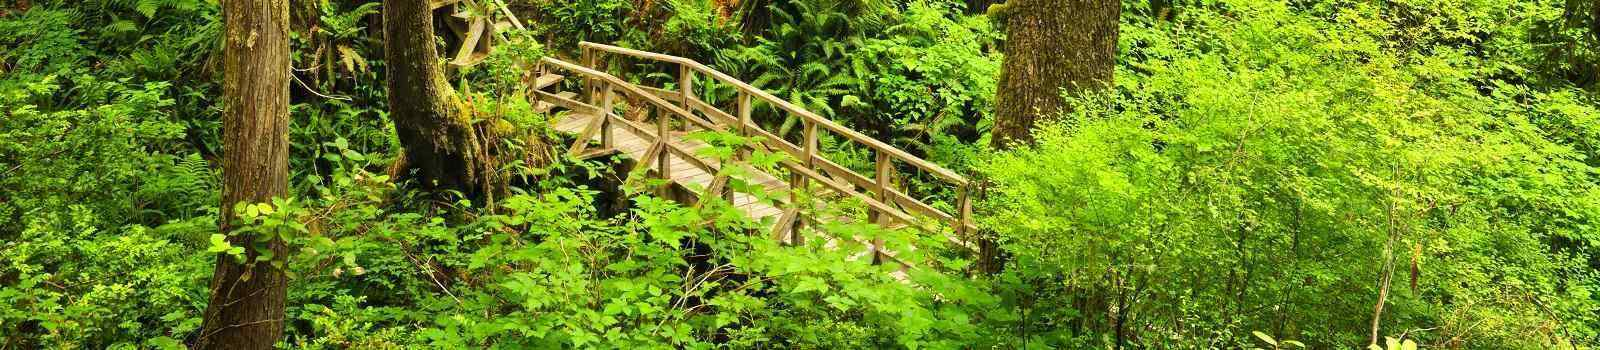 CAD-RM-RGRC  Kanada Vancouver Island Wooden path through temperate rain forest. Pacific Rim National Park